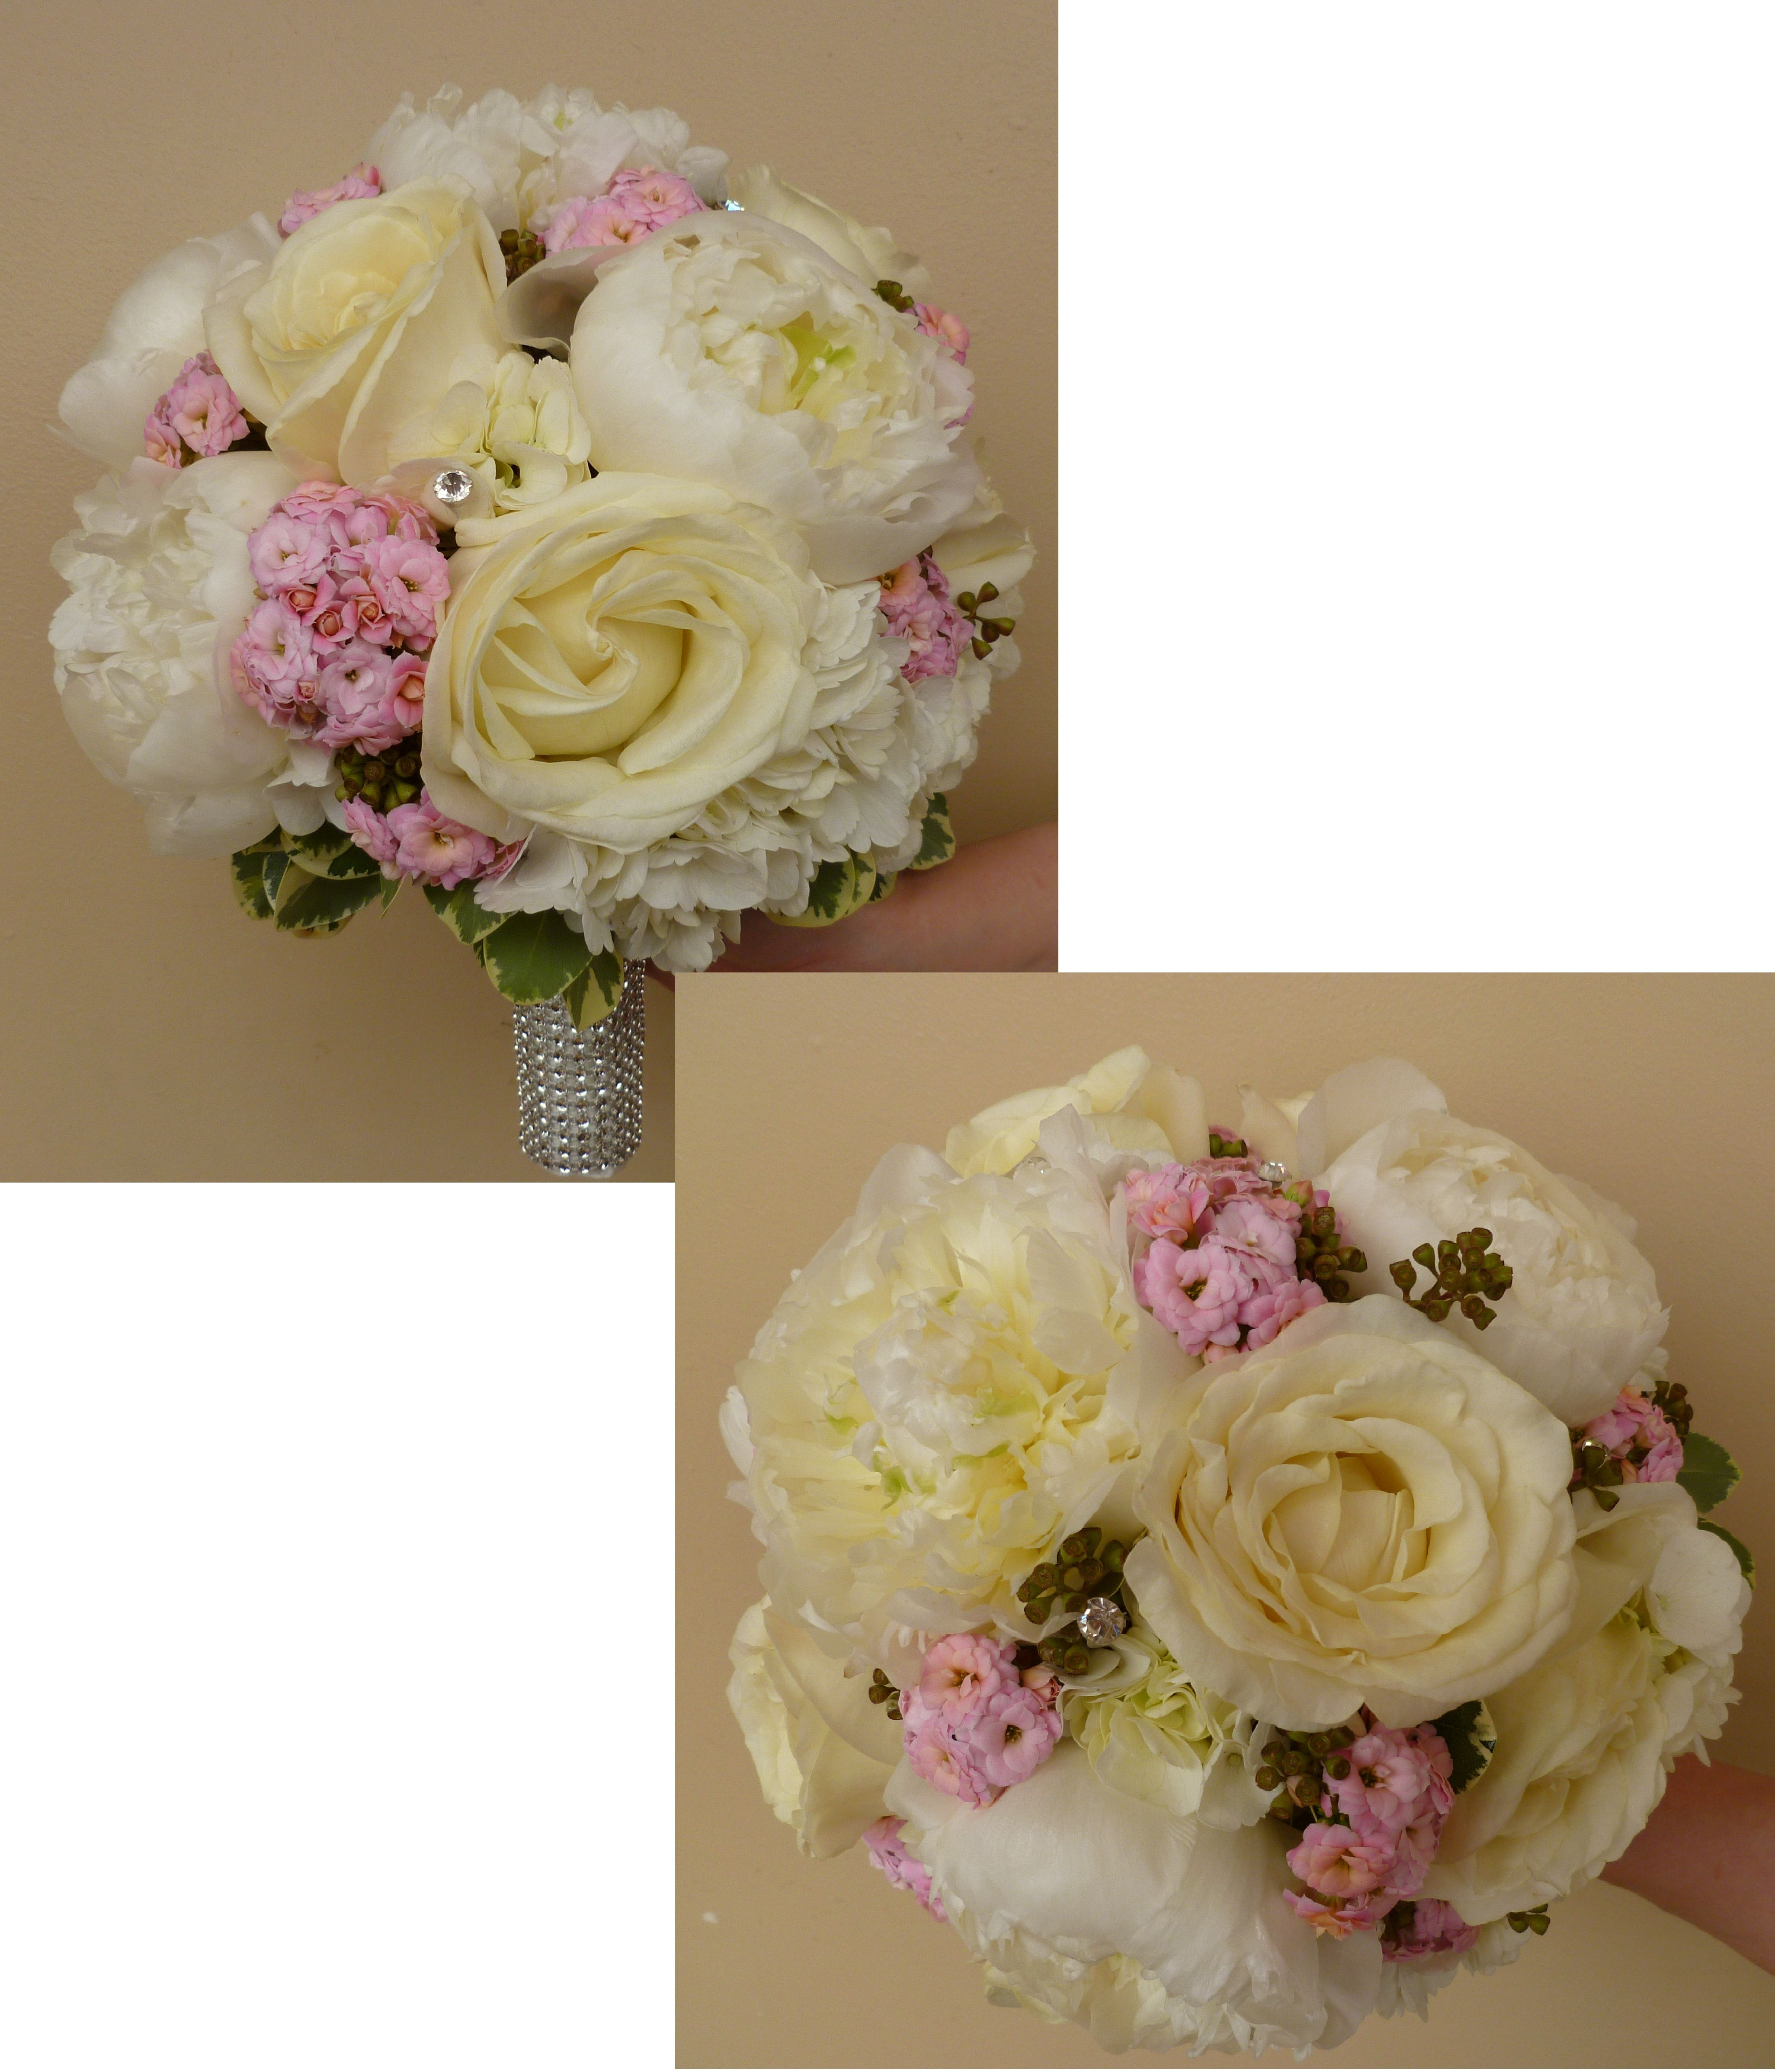 Posy Wedding Bouquet With White Peonies Roses And Pink Kalanchoe Accented A Diamond